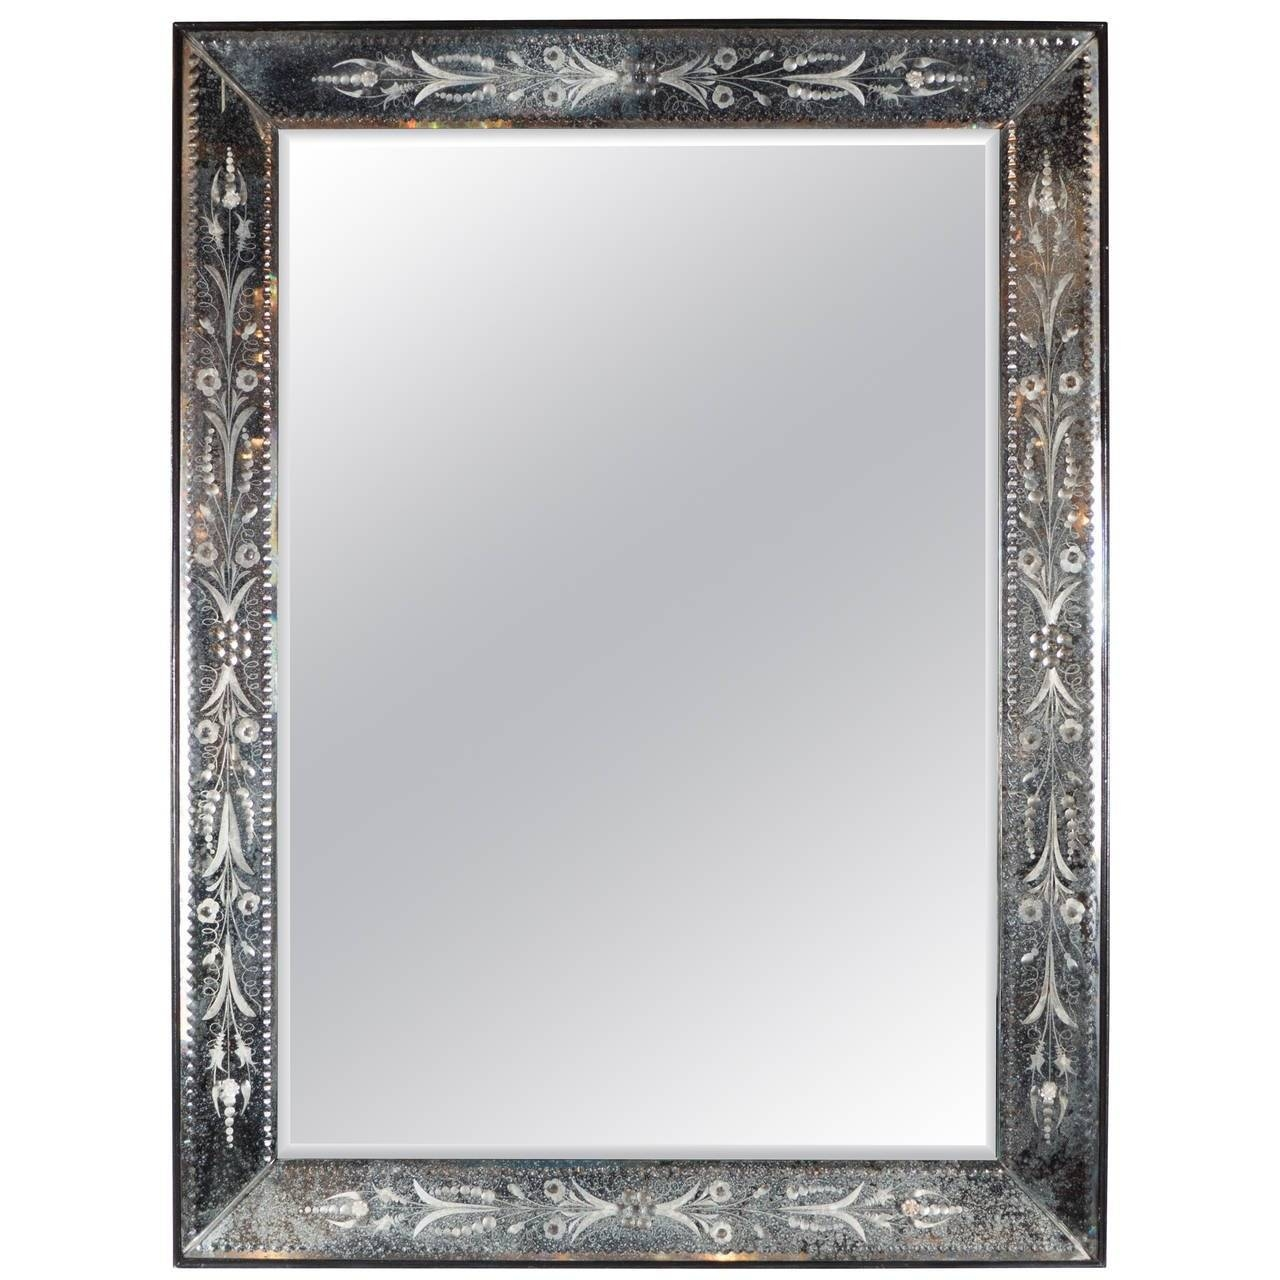 Mirror : Wonderful Tall Venetian Mirror Rectangular Venetian With Regard To Rectangular Venetian Mirrors (View 2 of 15)